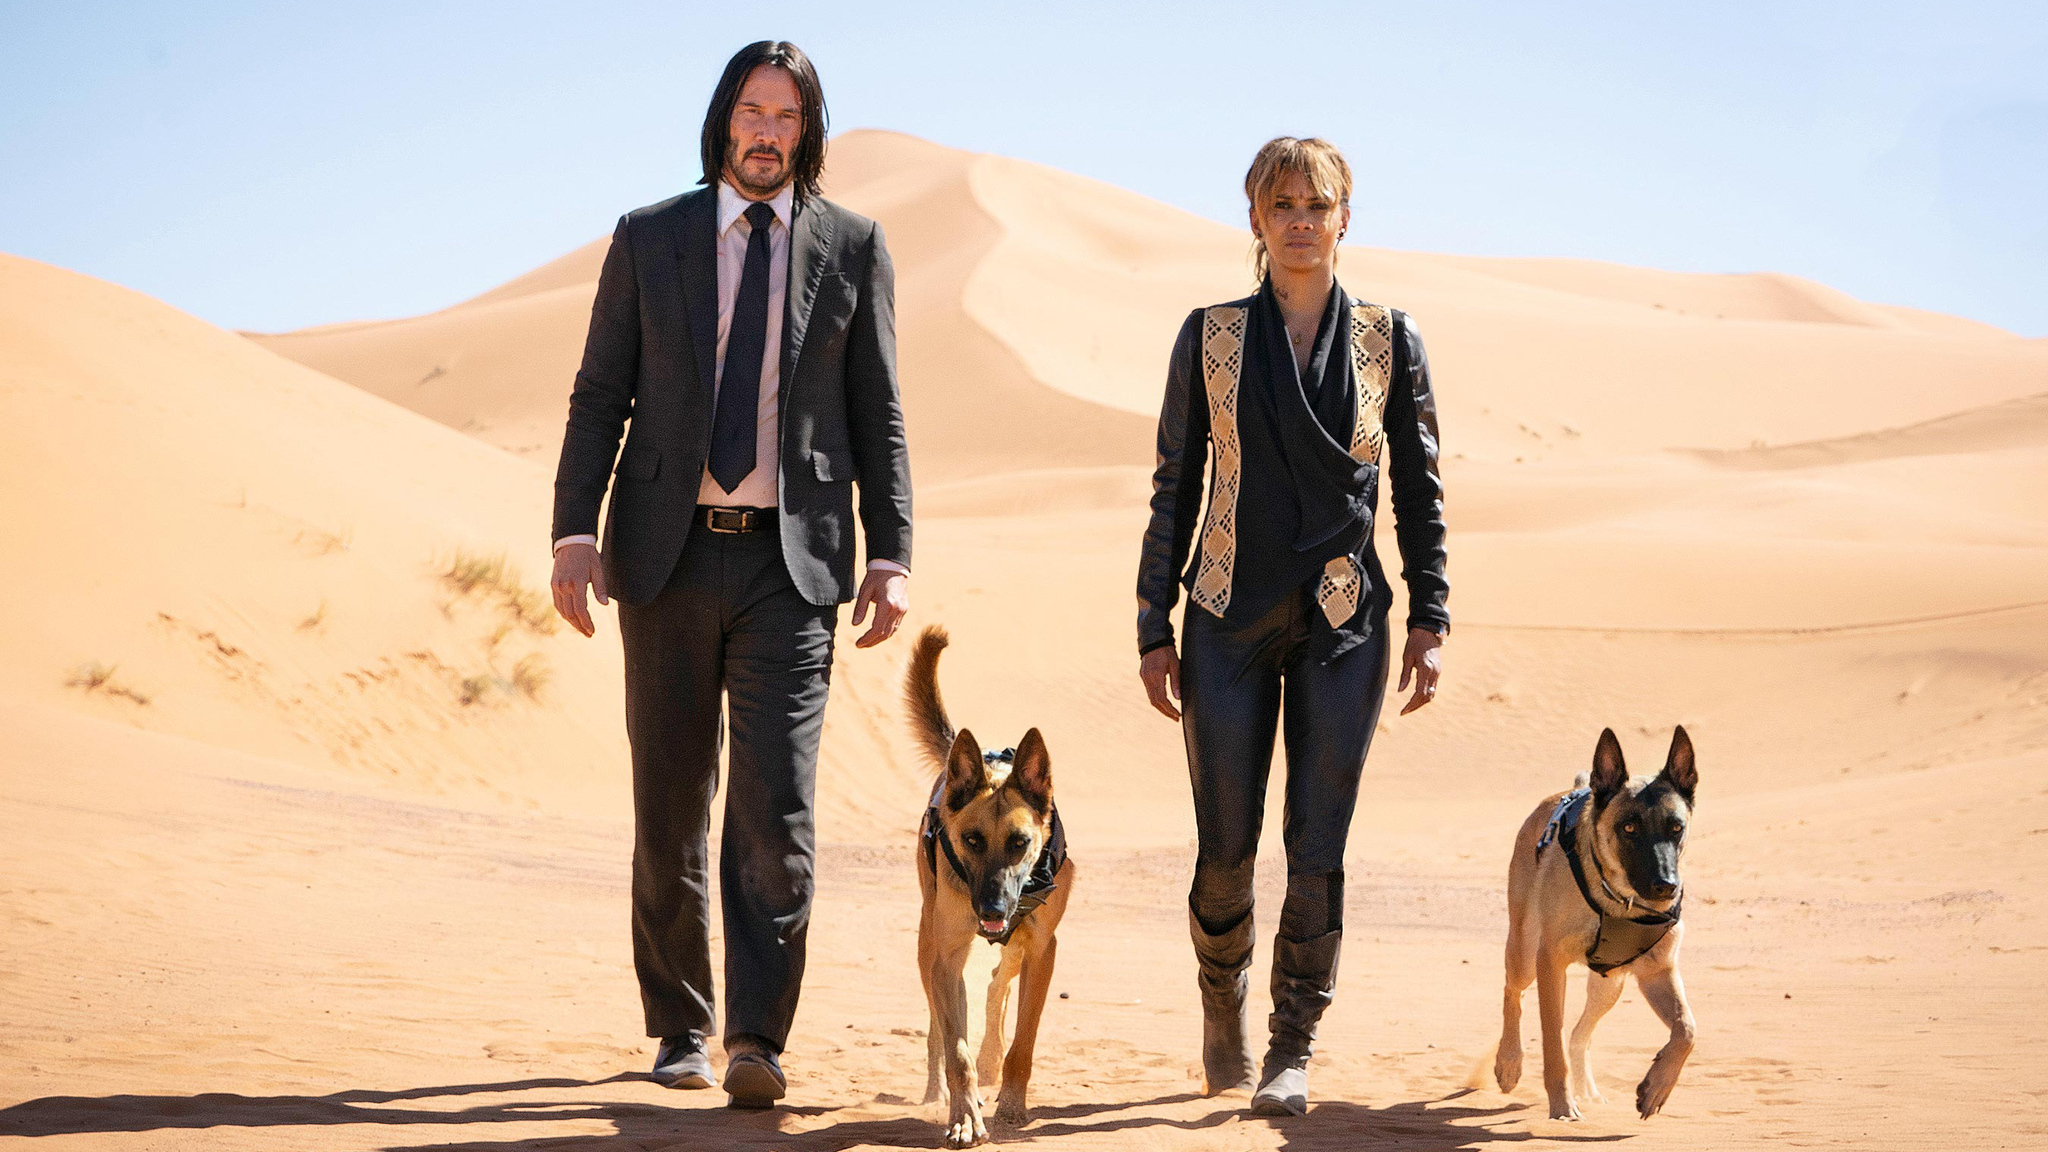 john-wick-3-movie-halle-berry-2019-f9.jpg